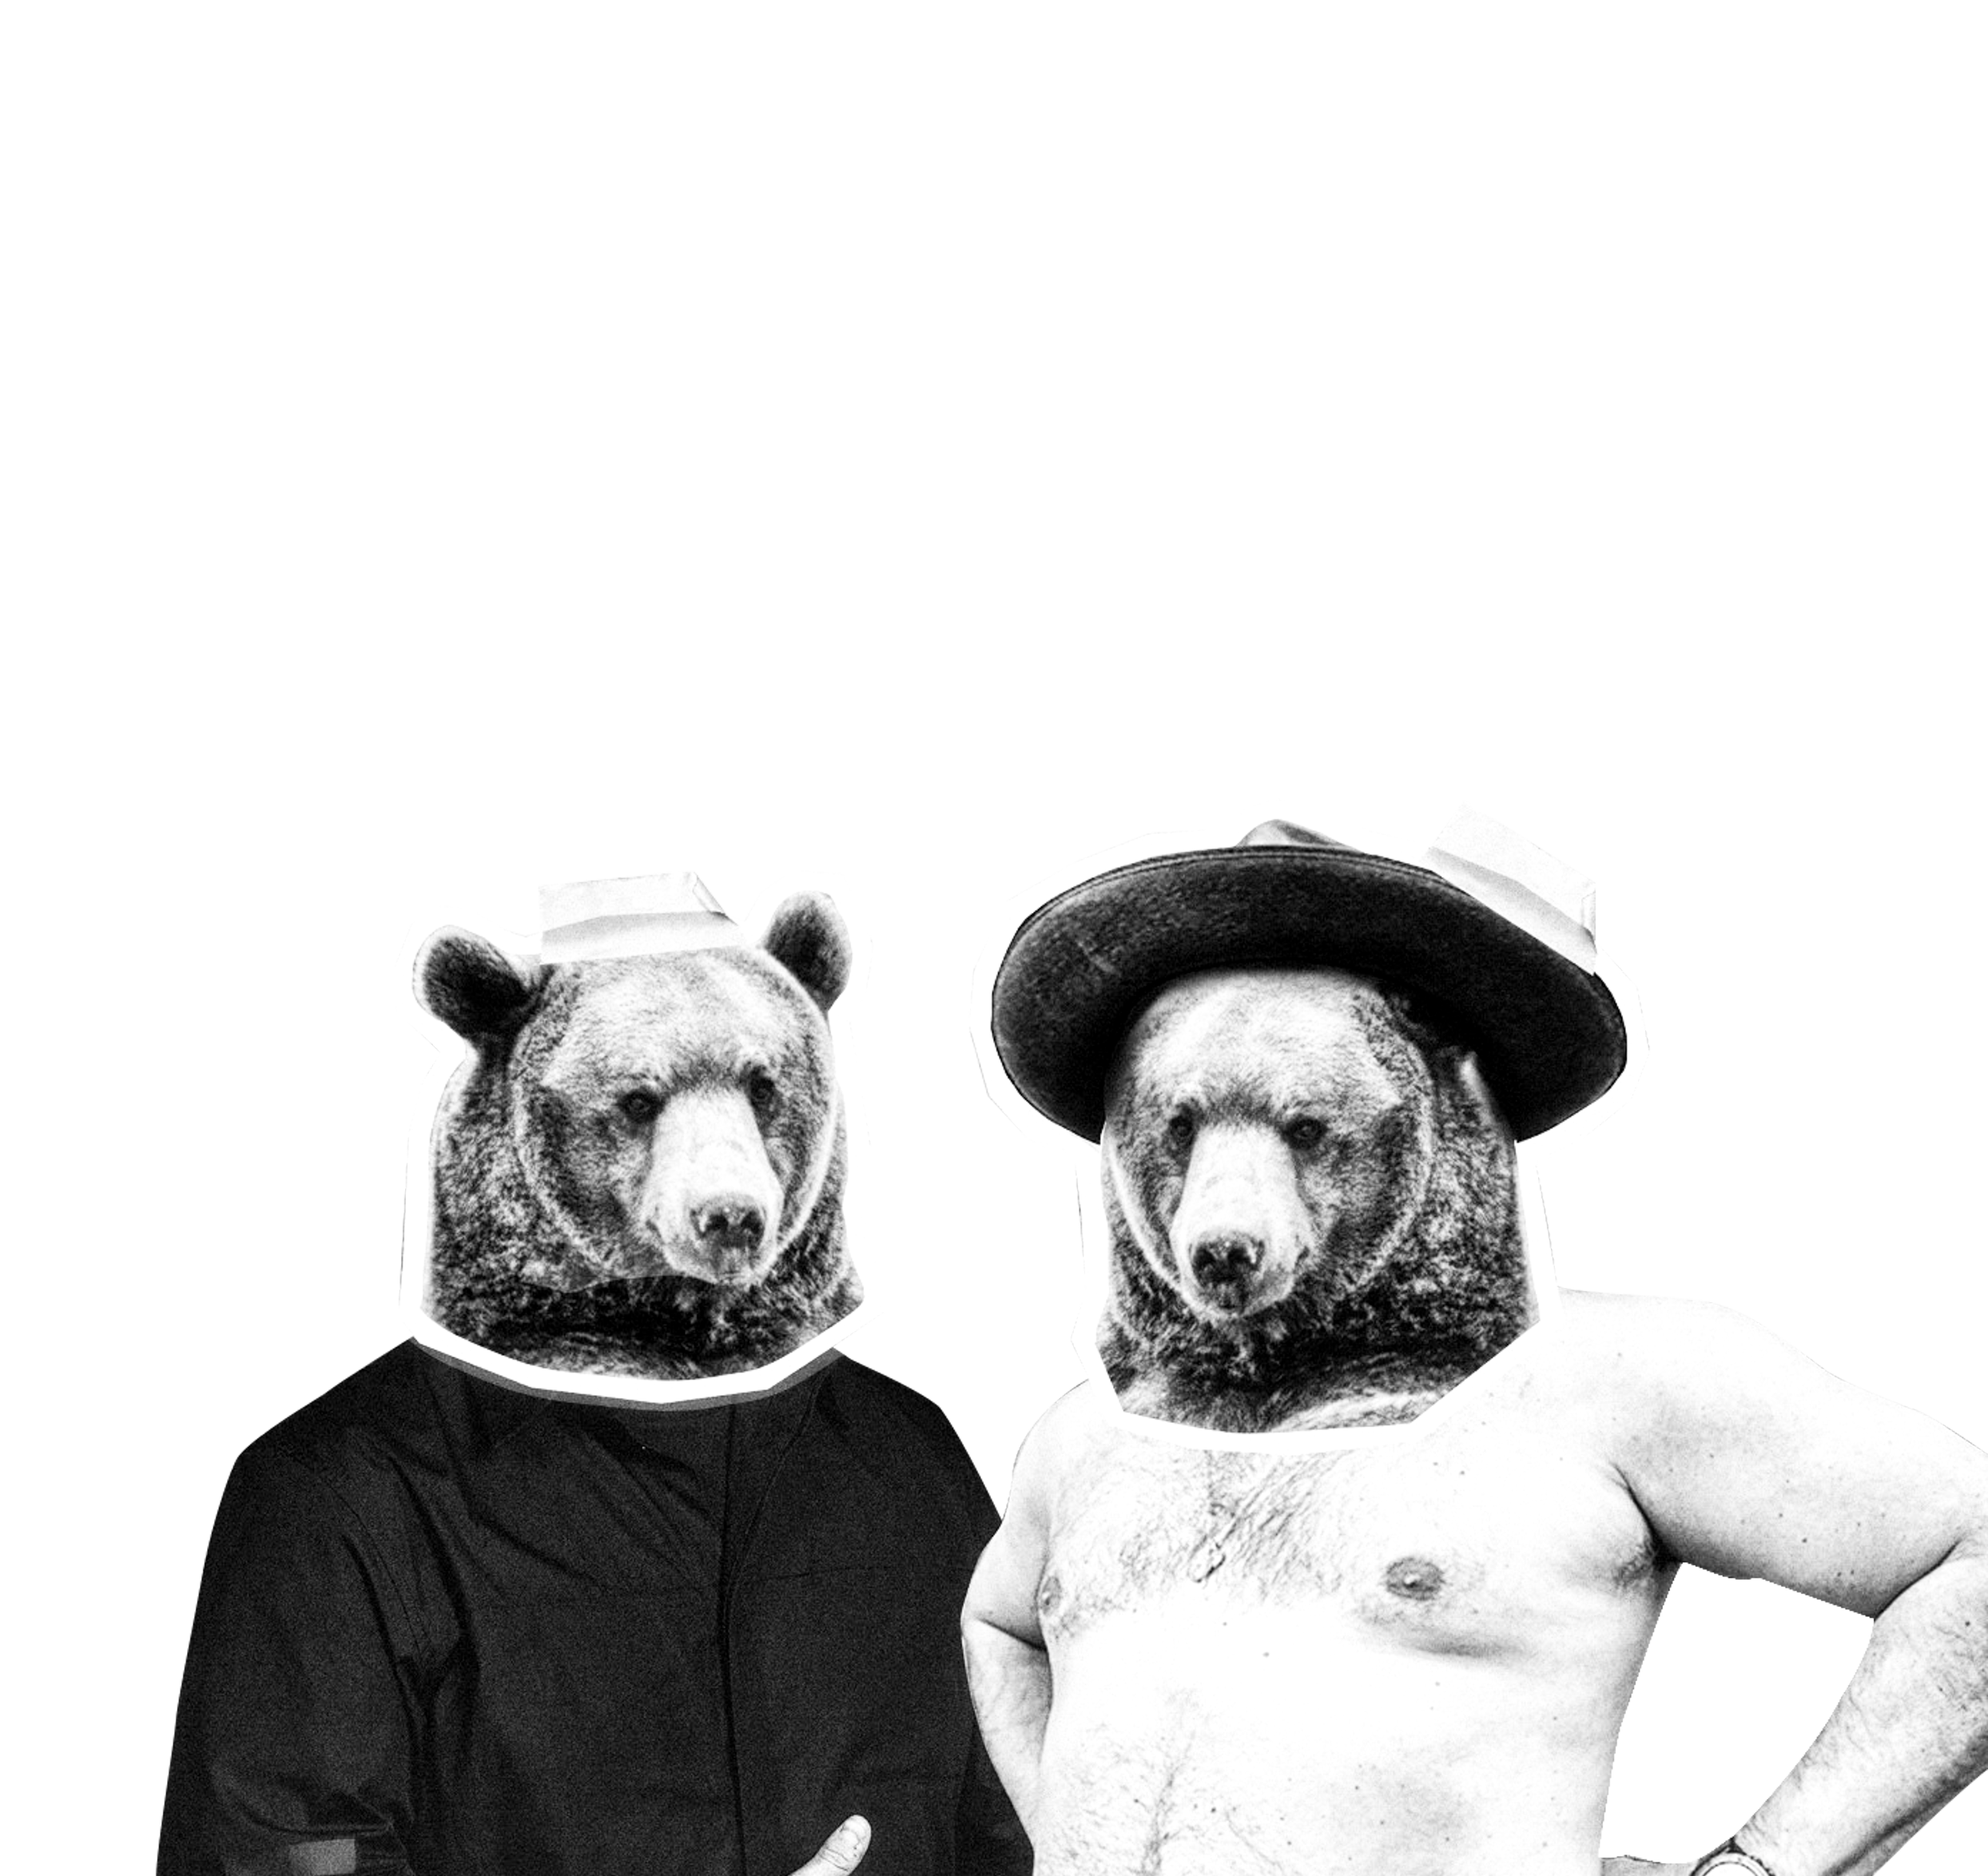 2 Bears 1 Cave with Tom Segura and Bert Kreischer